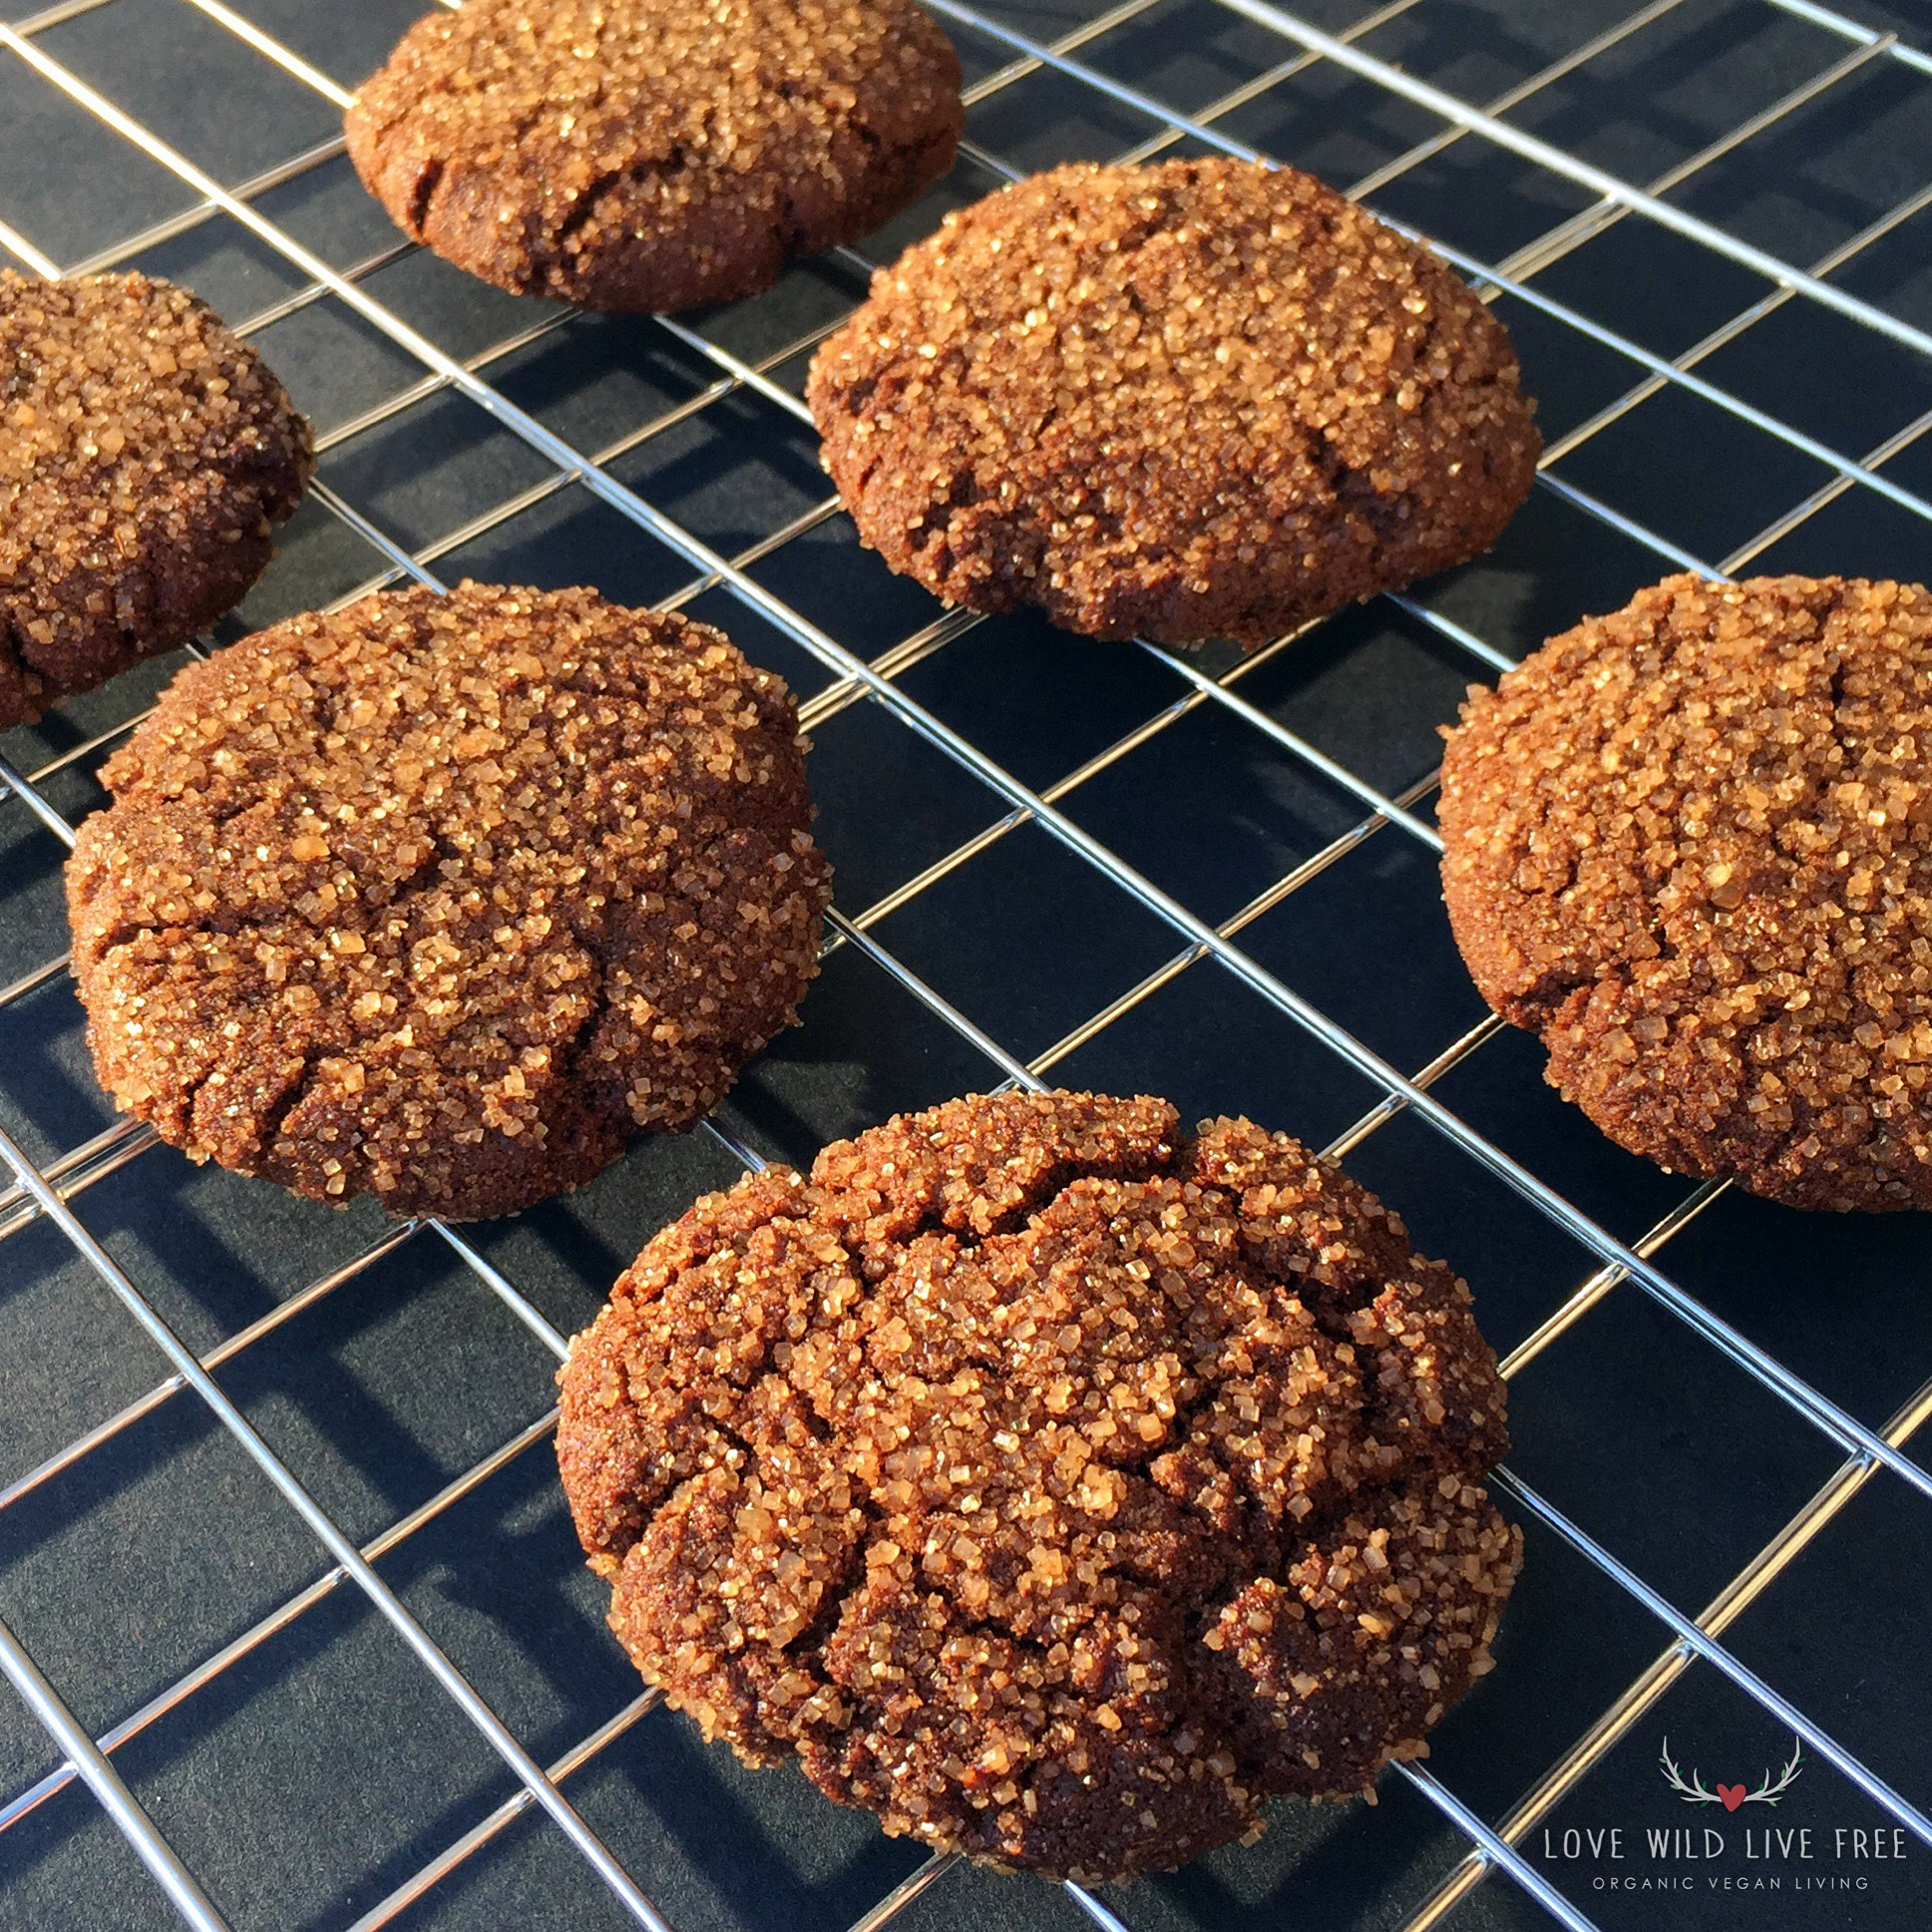 Festive Vegan Ginger Molasses Cookies - the turbinando sugar coating really makes these cookies sparkle!